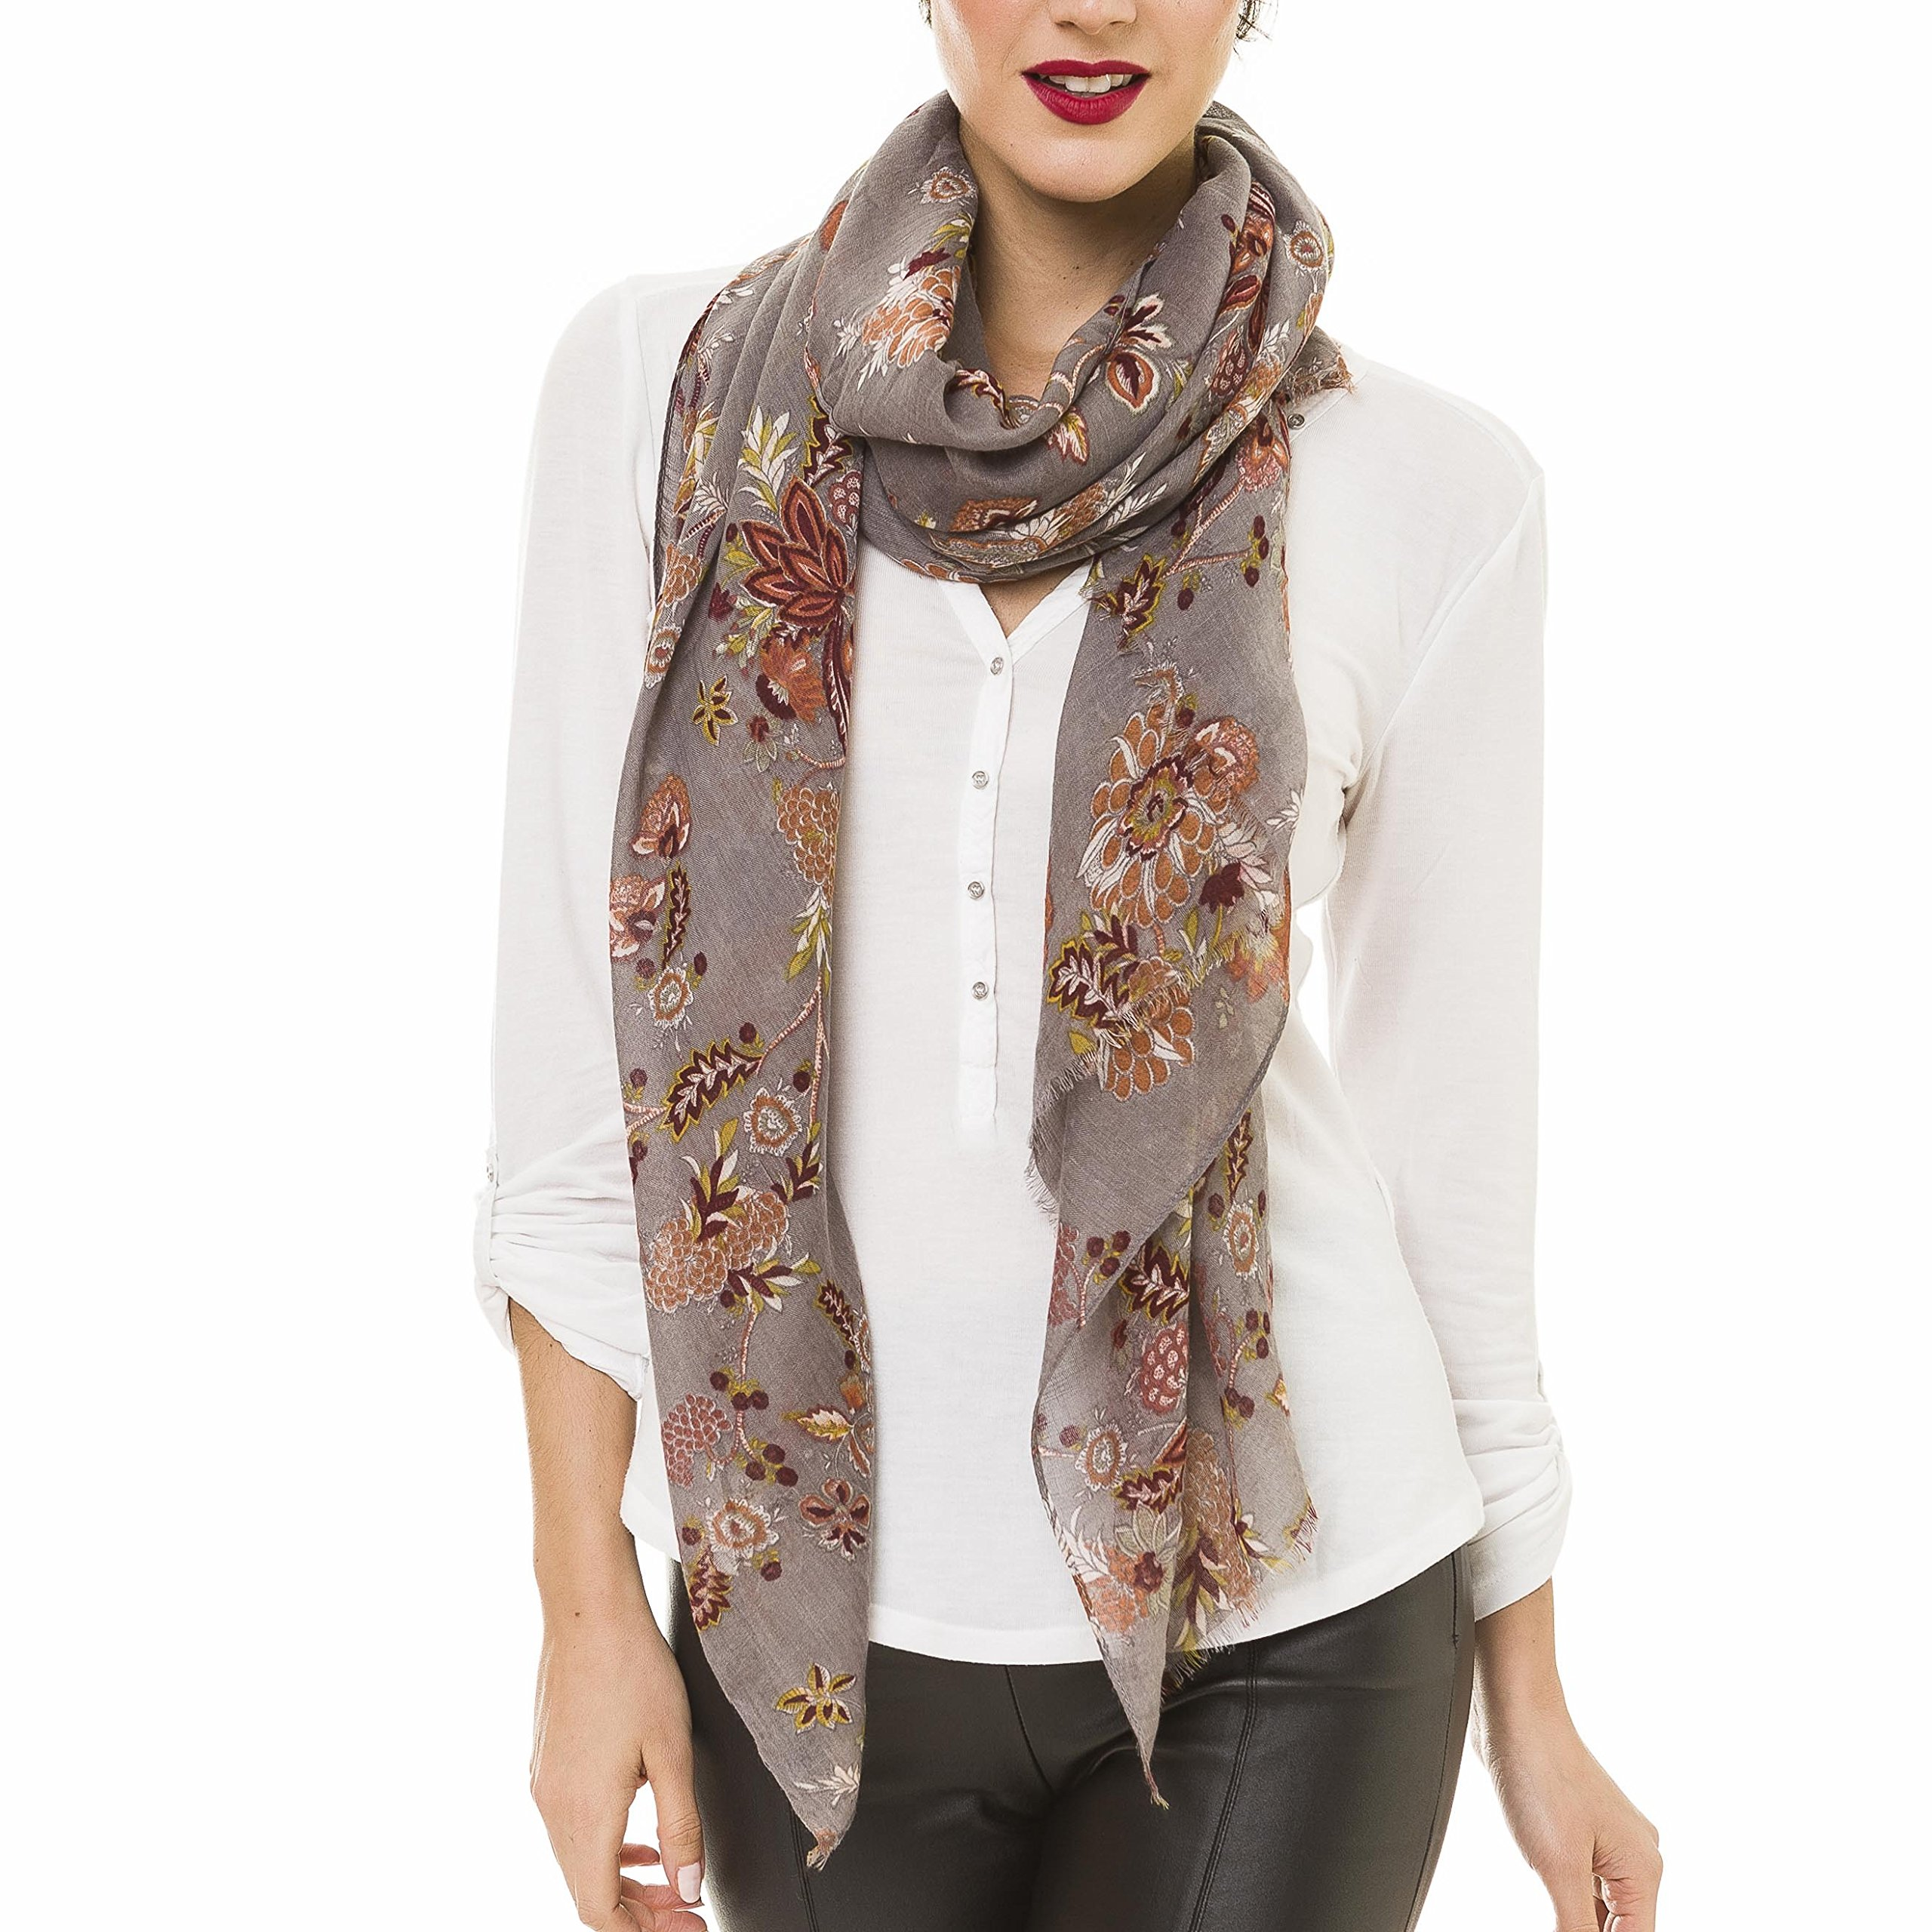 Scarf for Women Lightweight Paisley Fashion Fall Winter Scarves Shawl Wraps (NF47-4)